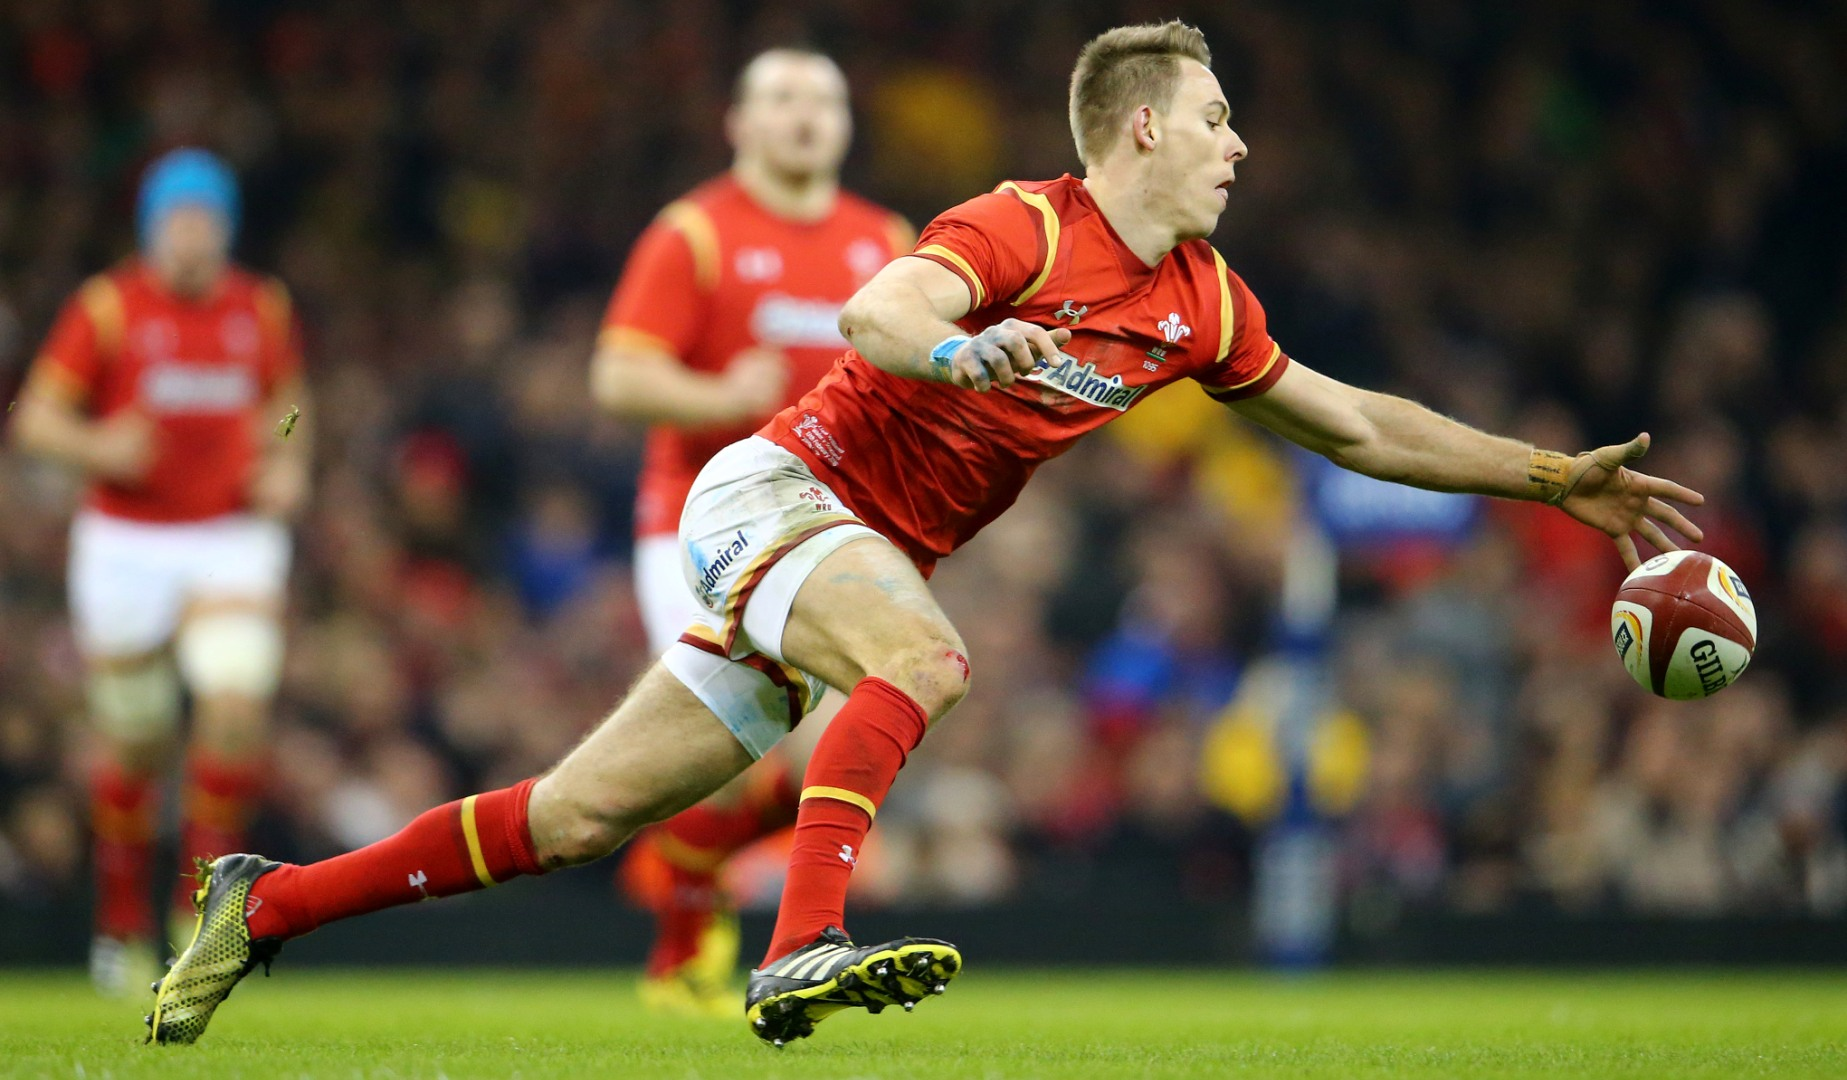 LionsWatch: Williams shines as Wales beat Argentina